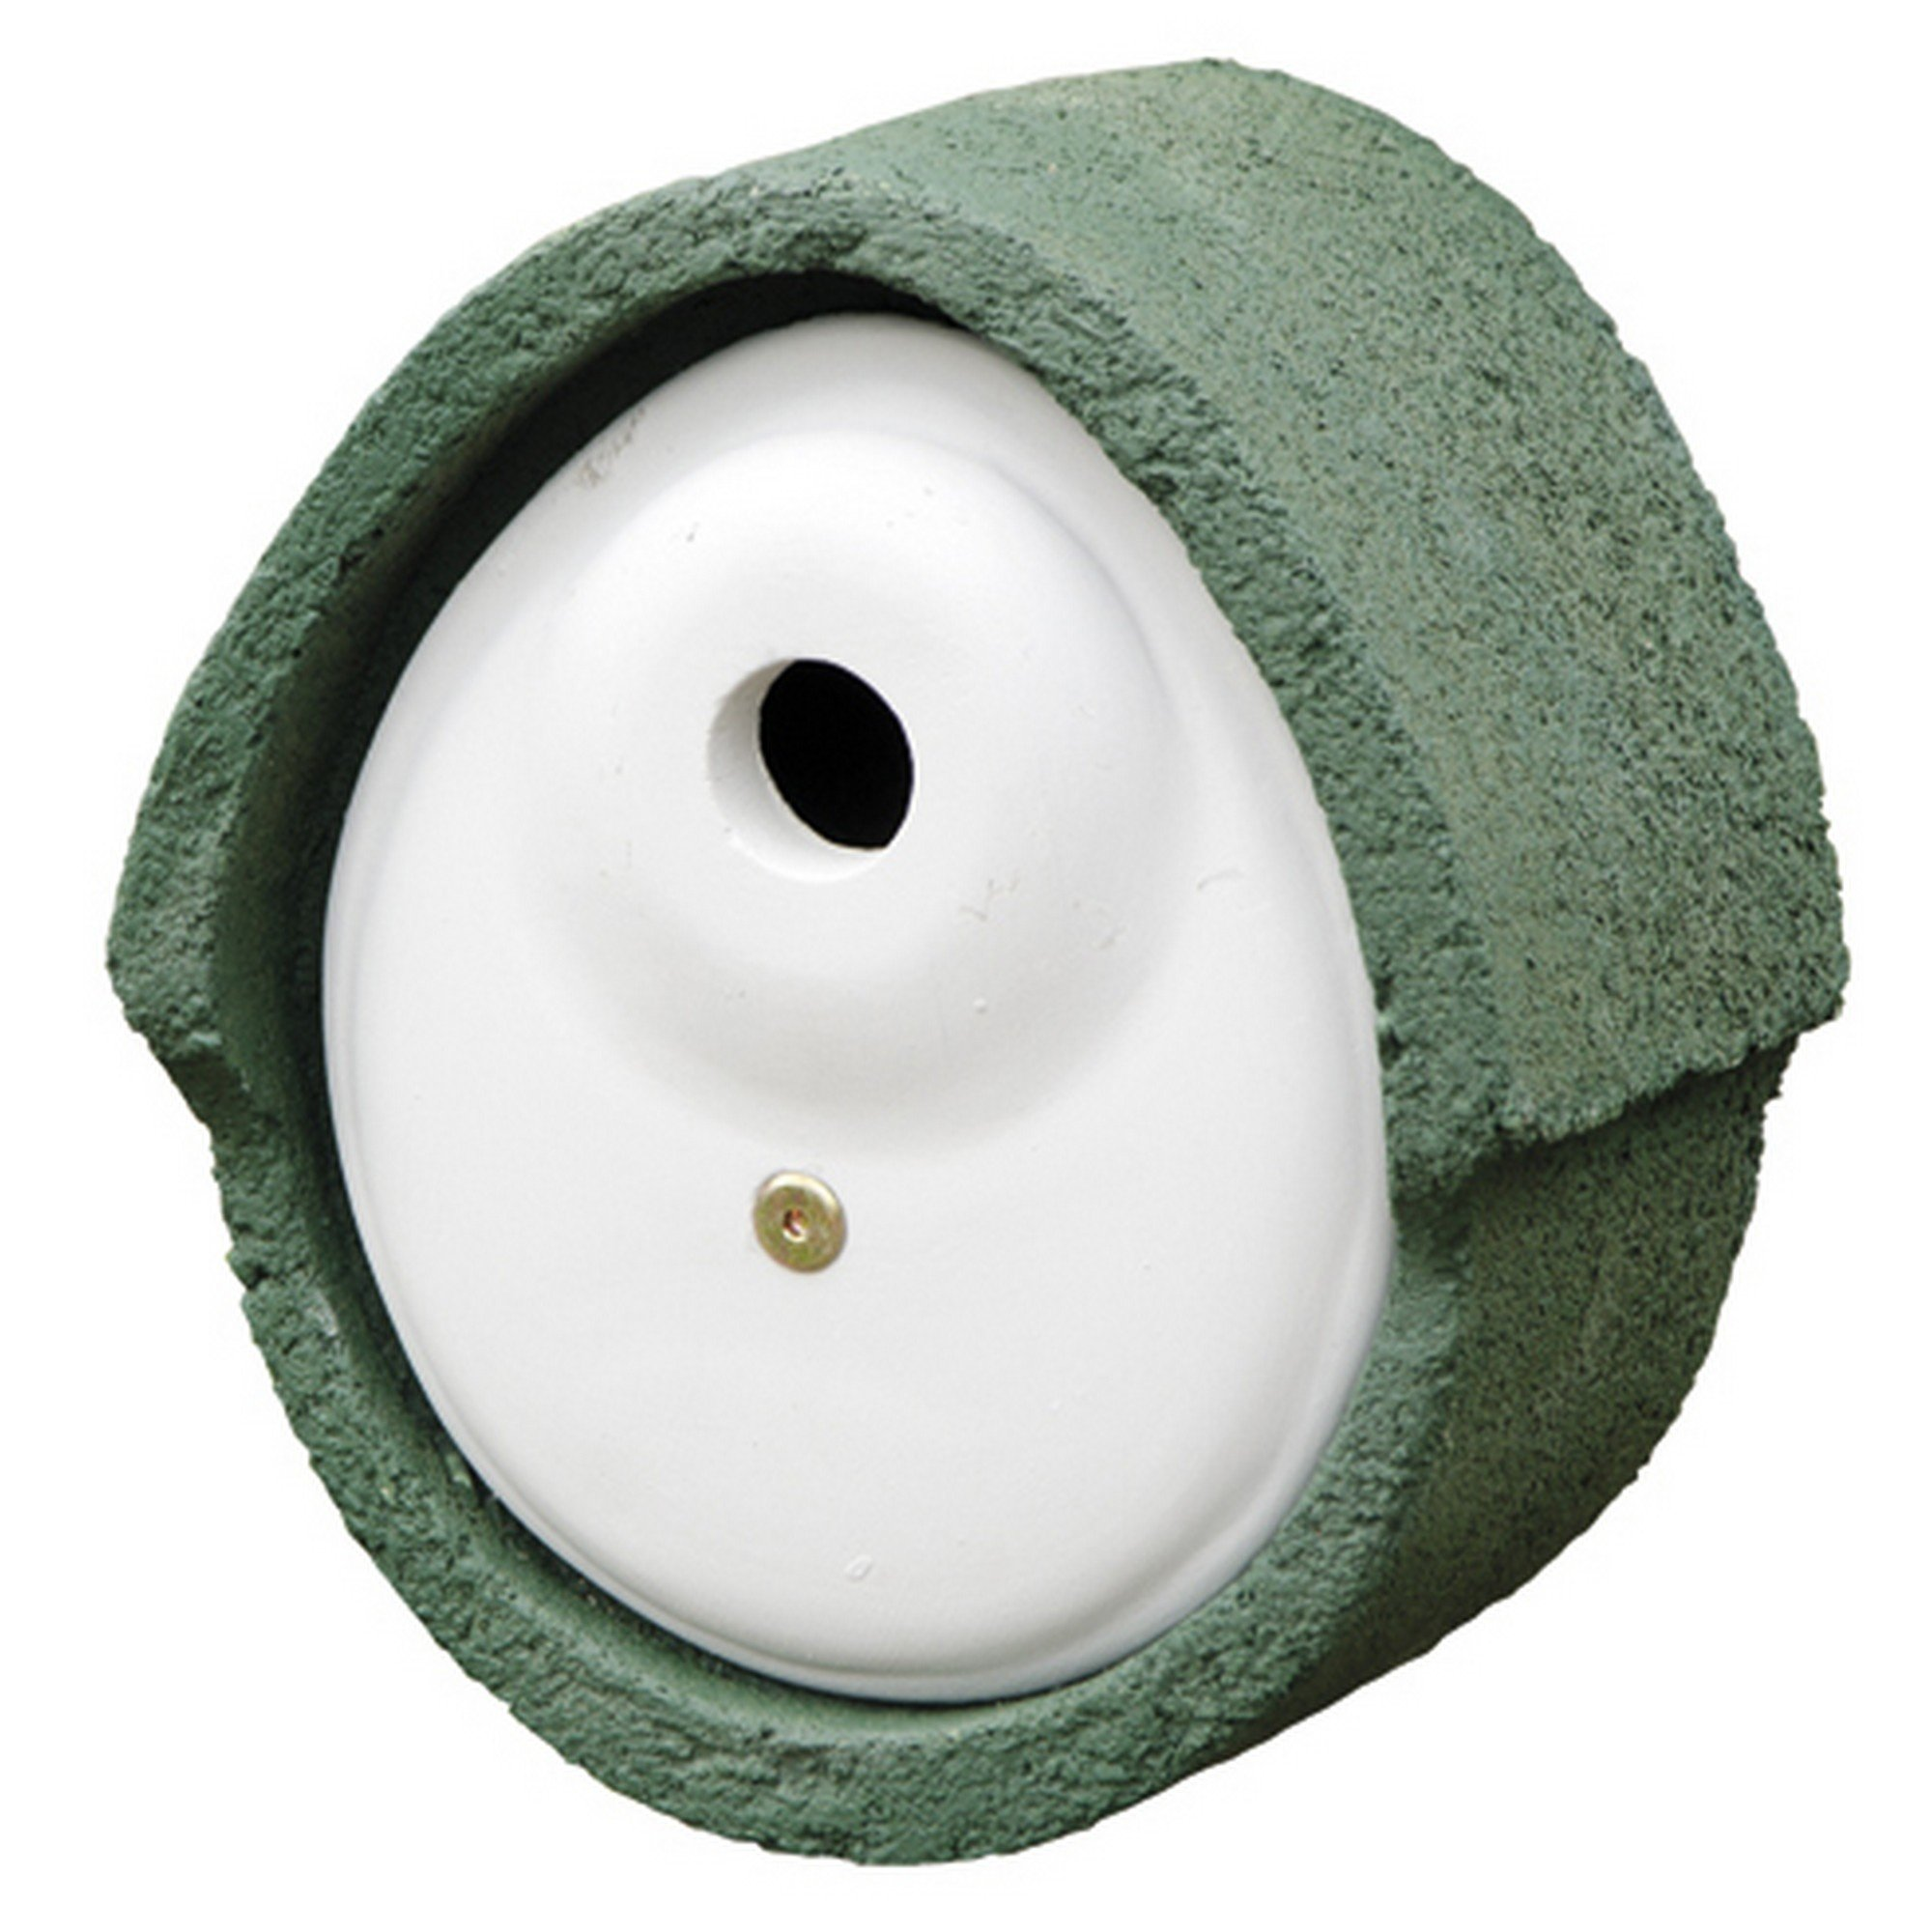 C J WoodStone Durable Oval Nest Box (1.2in) (Green)